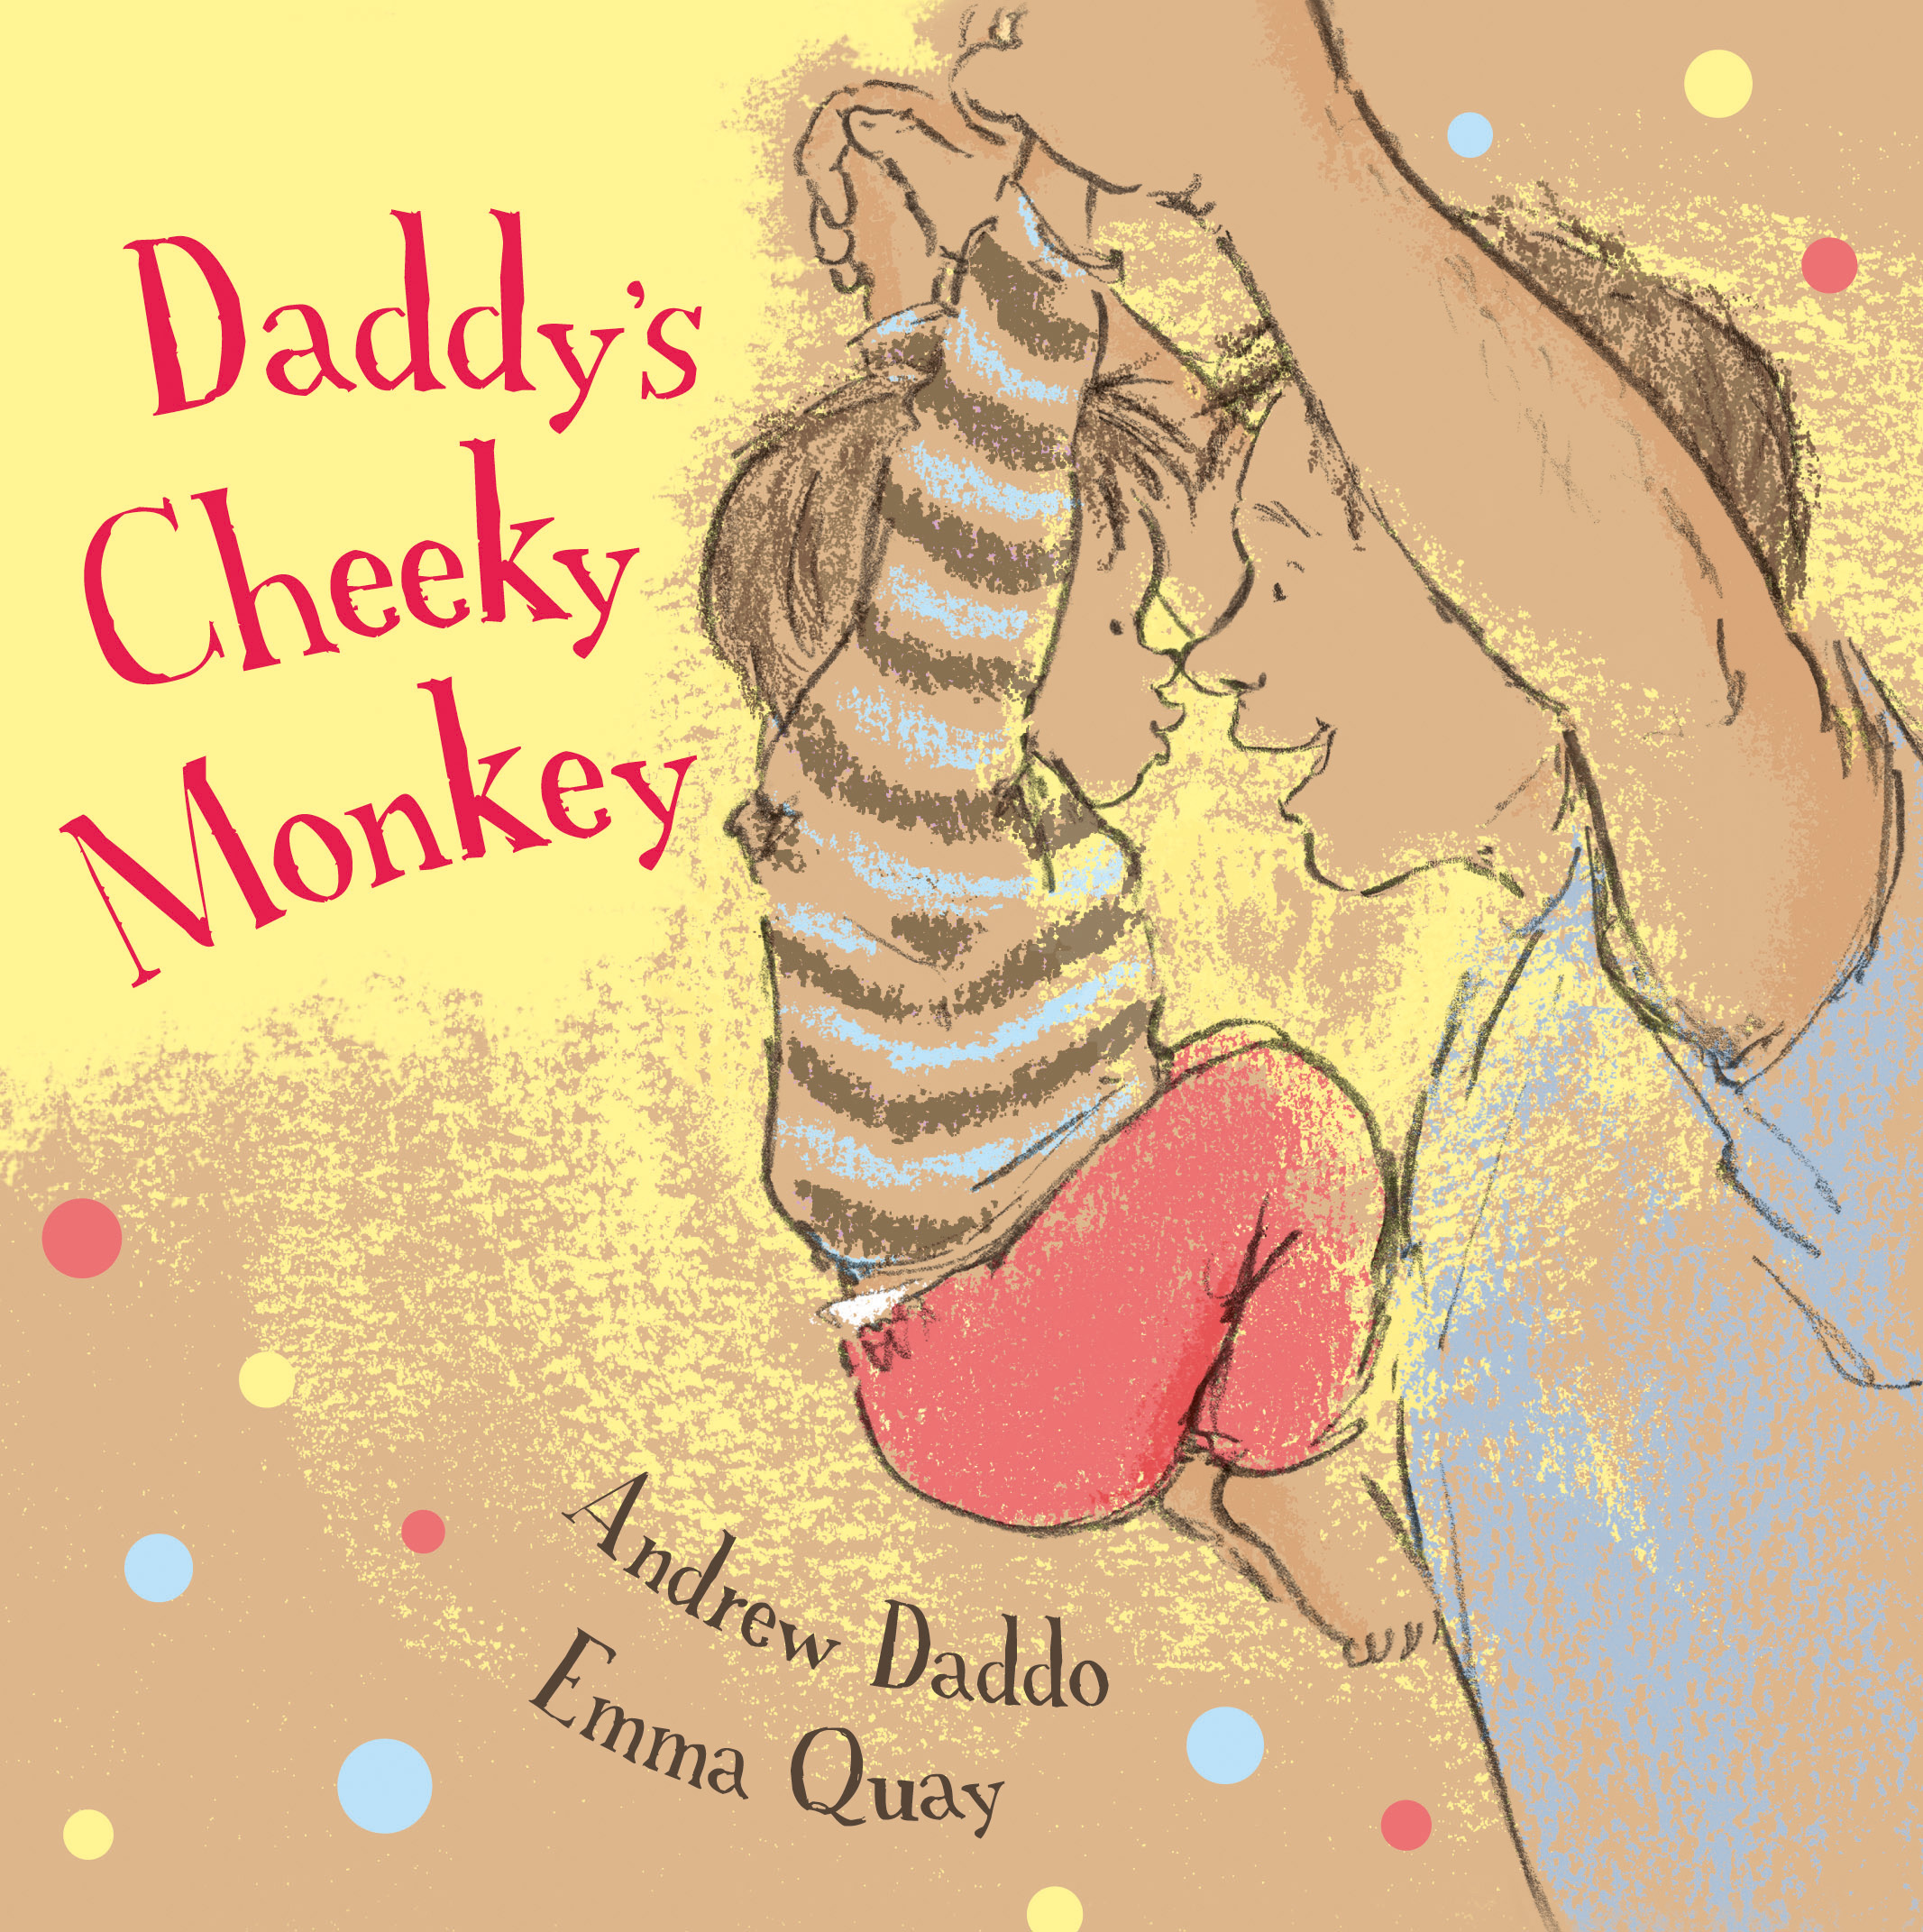 DADDY'S CHEEKY MONKEY by Emma Quay (ABC Books) - www.emmaquay.com